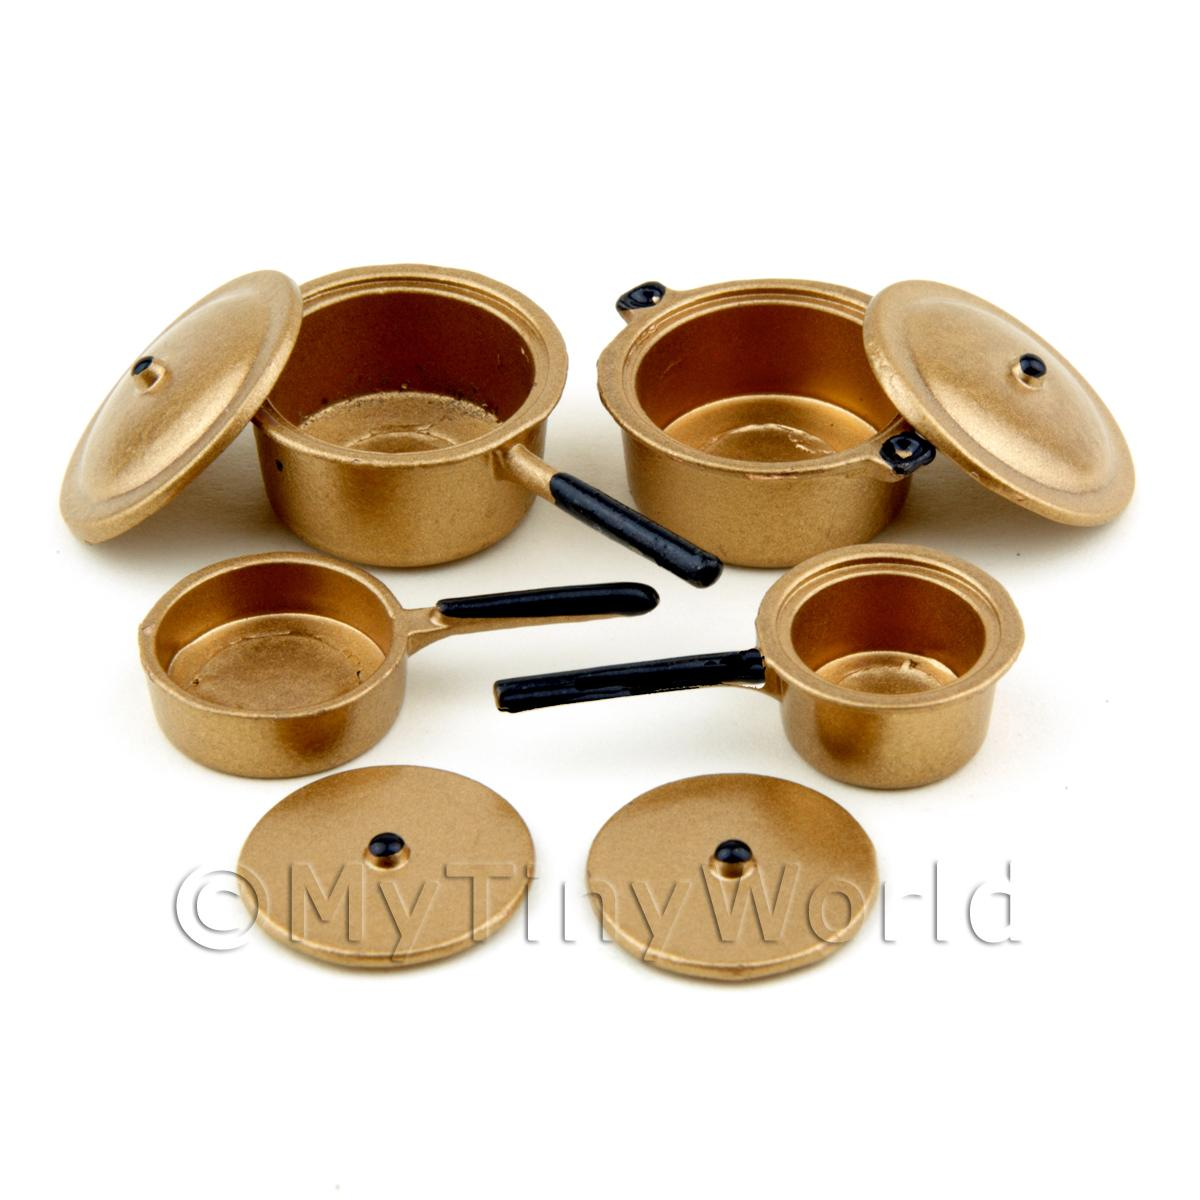 Dolls House Miniature Set of 4 Metal Saucepans With Lids